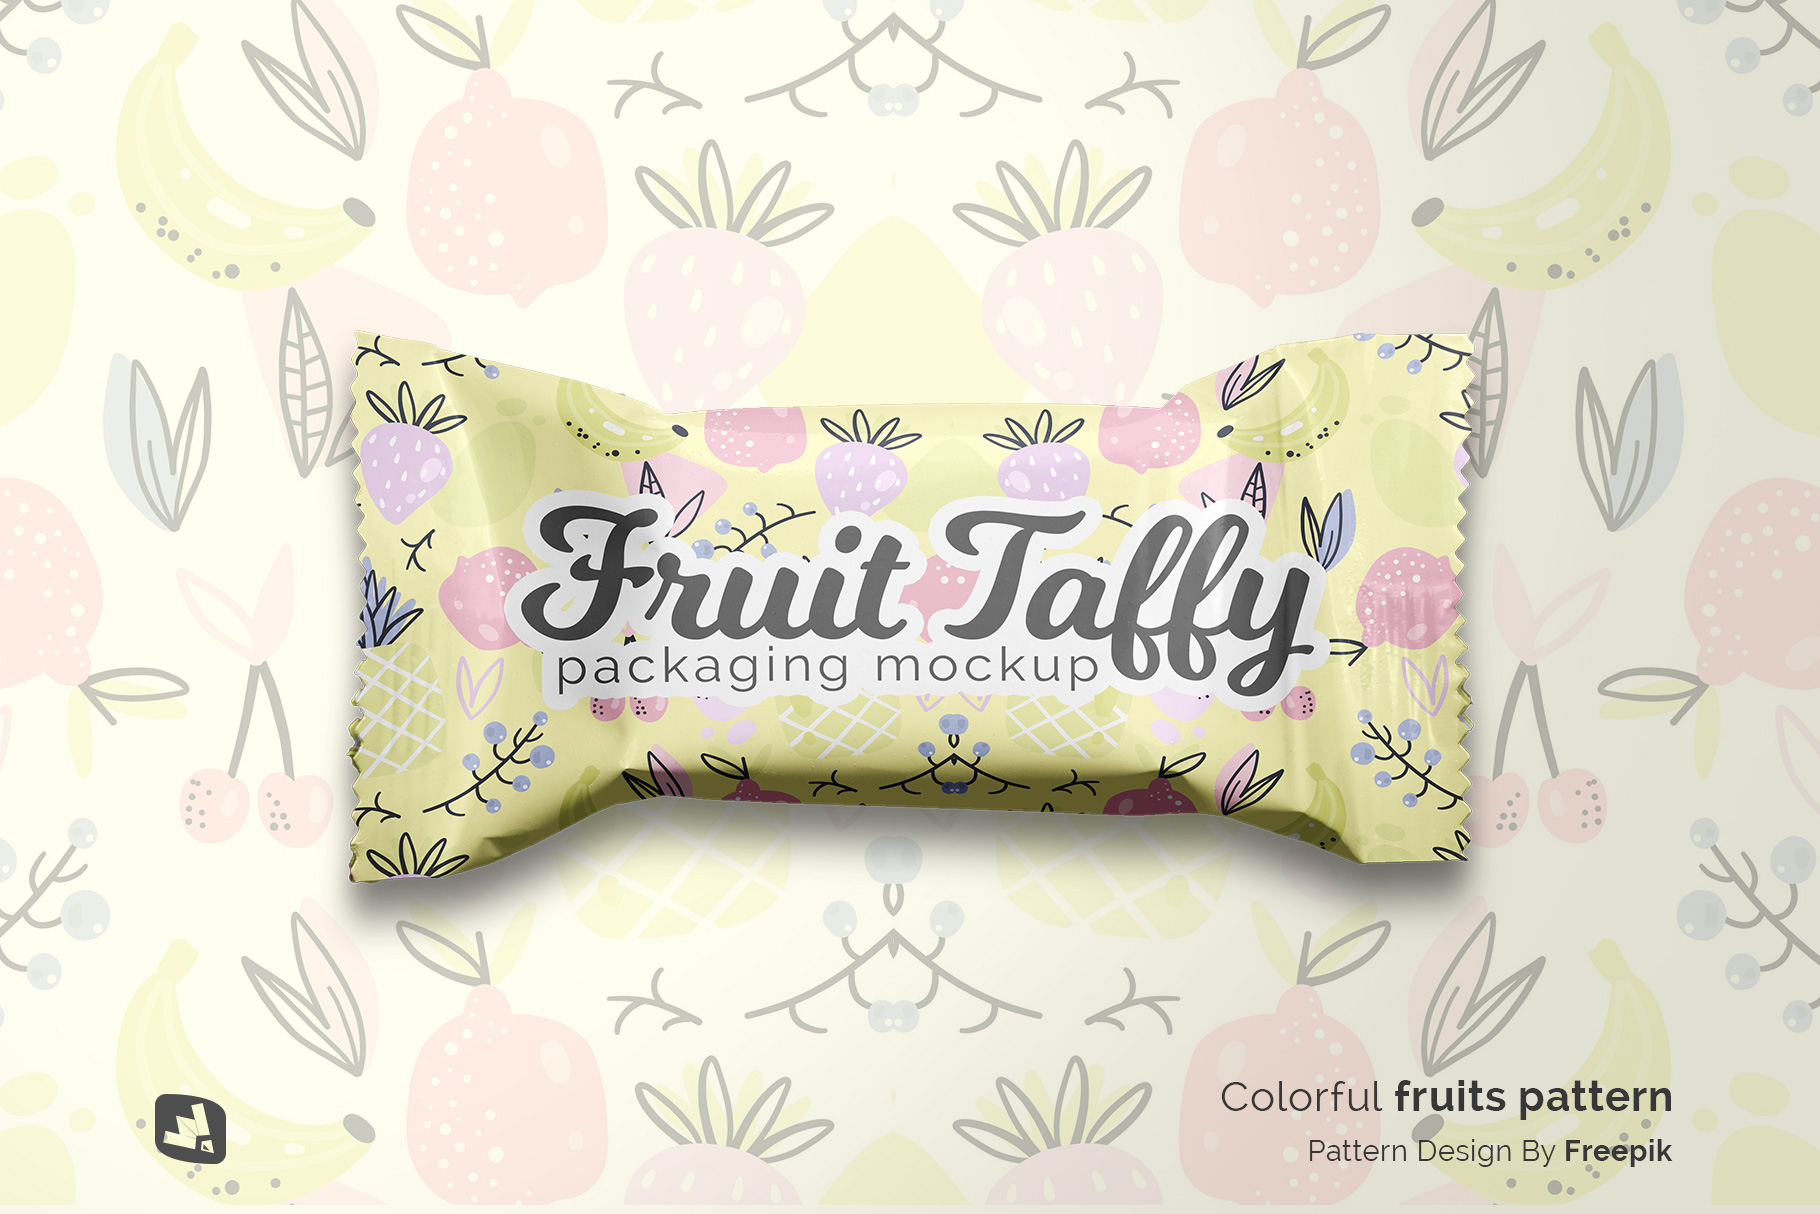 designer's credit of the top view taffy packaging mockup